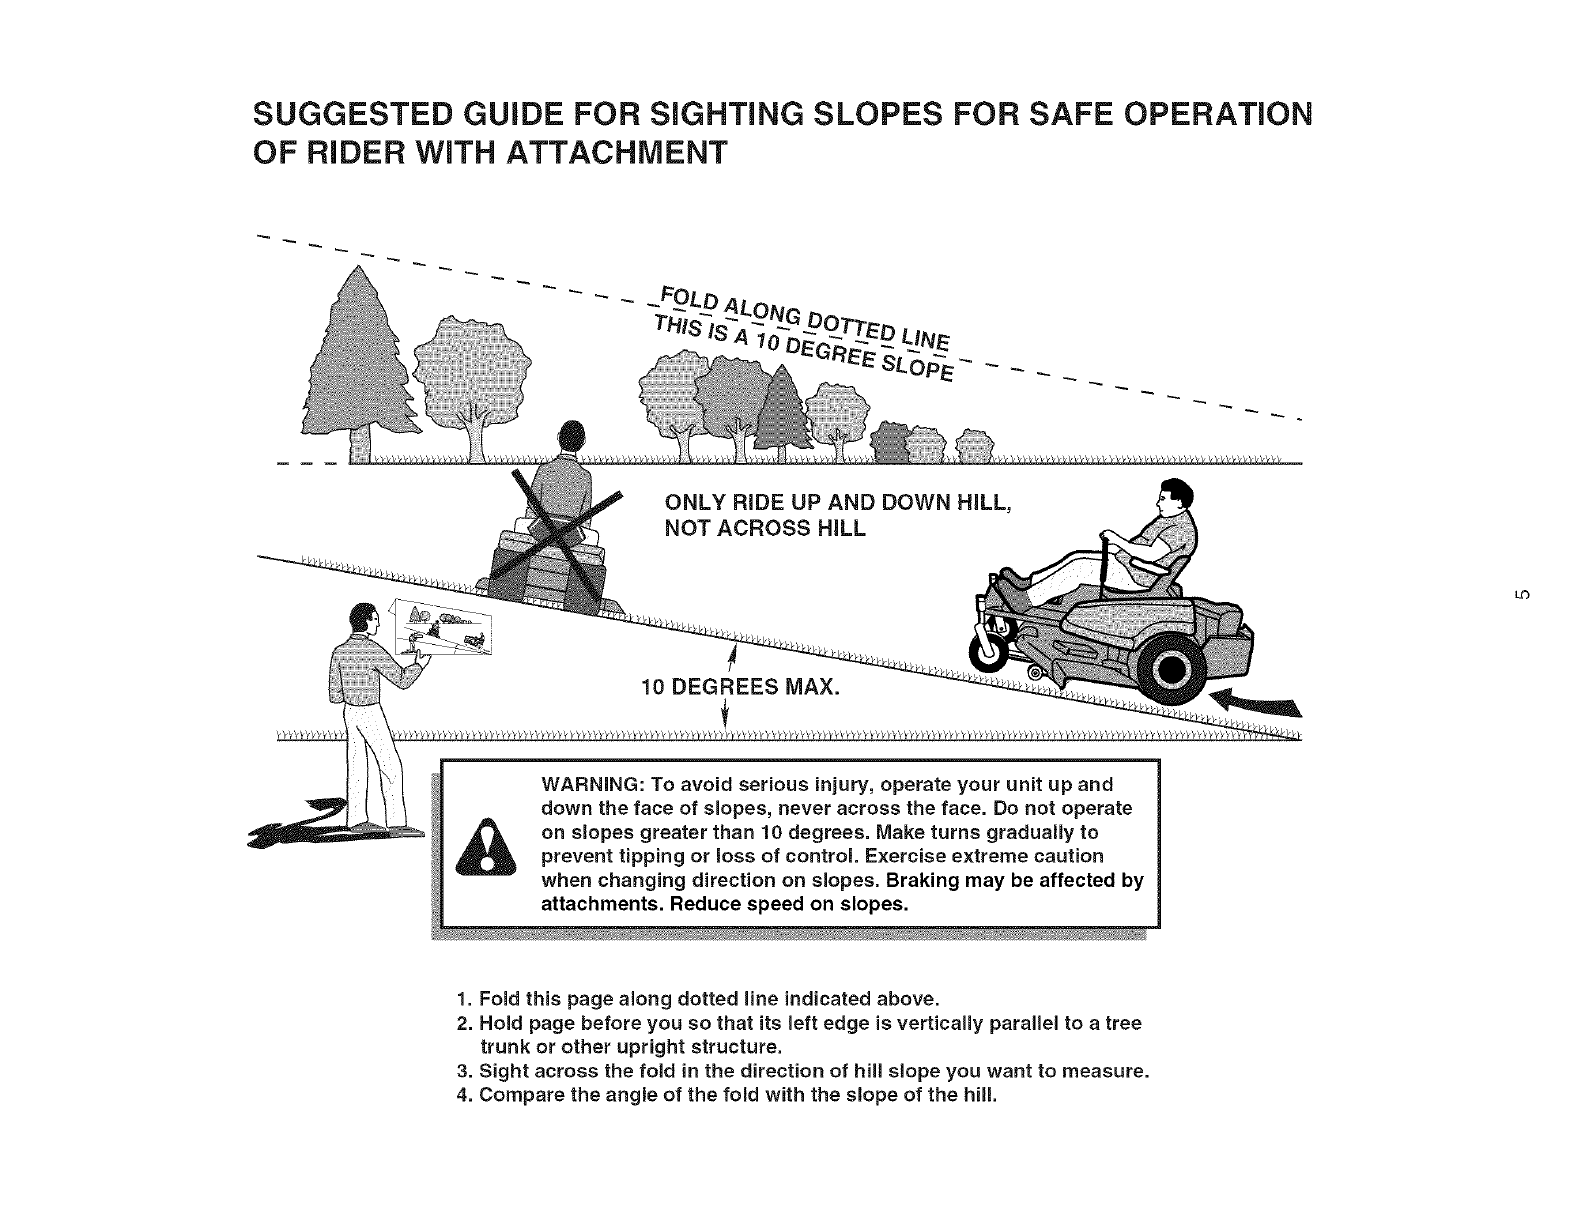 Craftsman 107277860 User Manual Zero Turn Rear Engine Rider Manuals Got This Jeep 5 Tire Rotation Diagram See More 784 Suggested Guide For Sighting Slopes Safe Operation